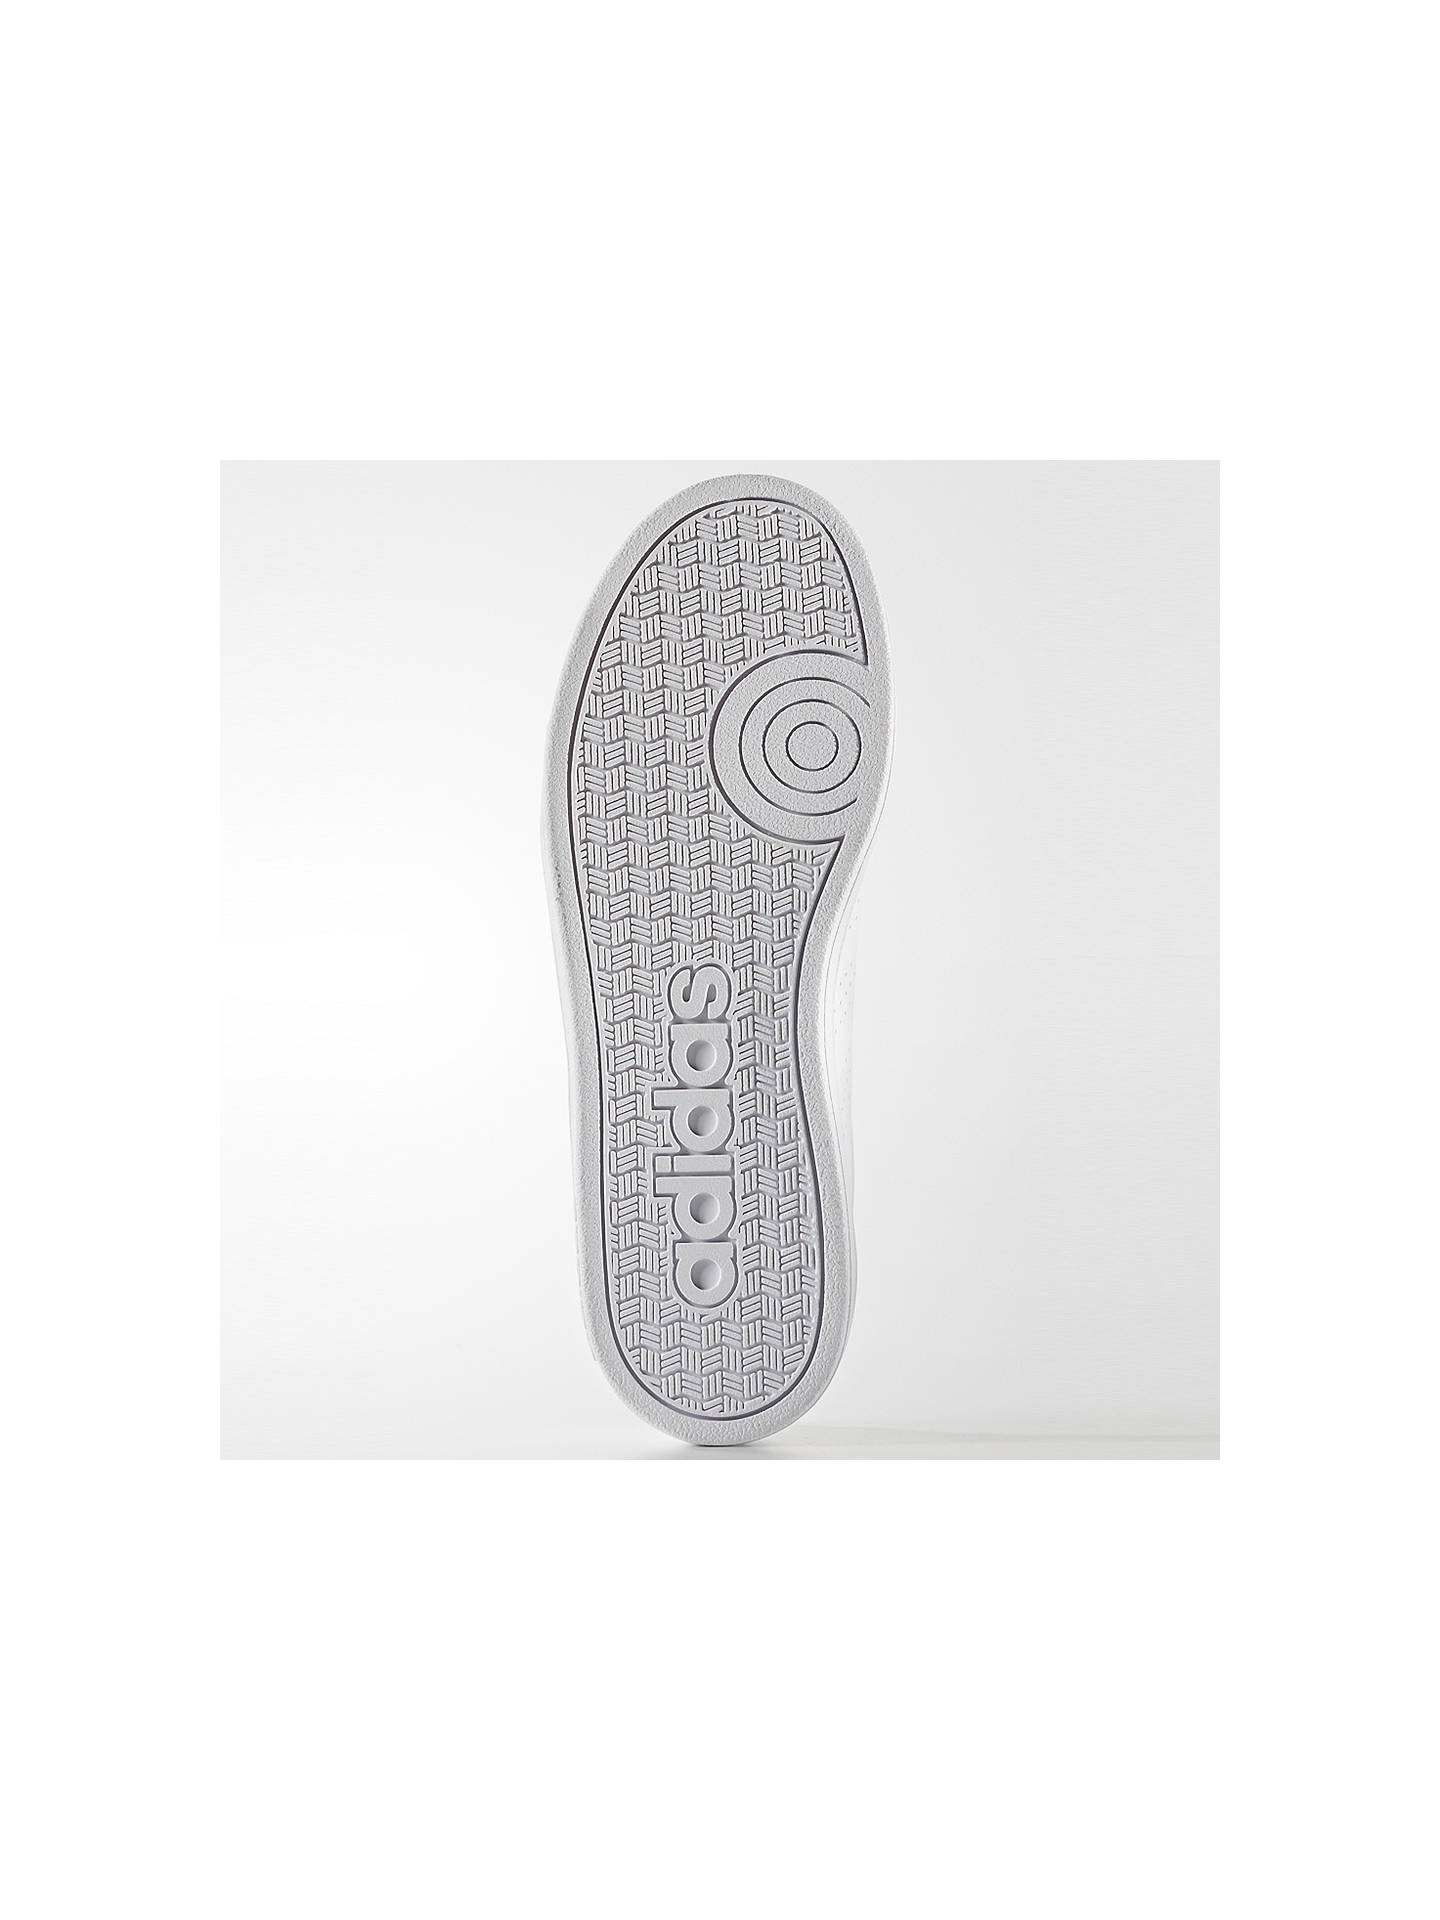 Buyadidas Children's Advantage VS Lace Up Sports Shoes, White, 3 Online at johnlewis.com